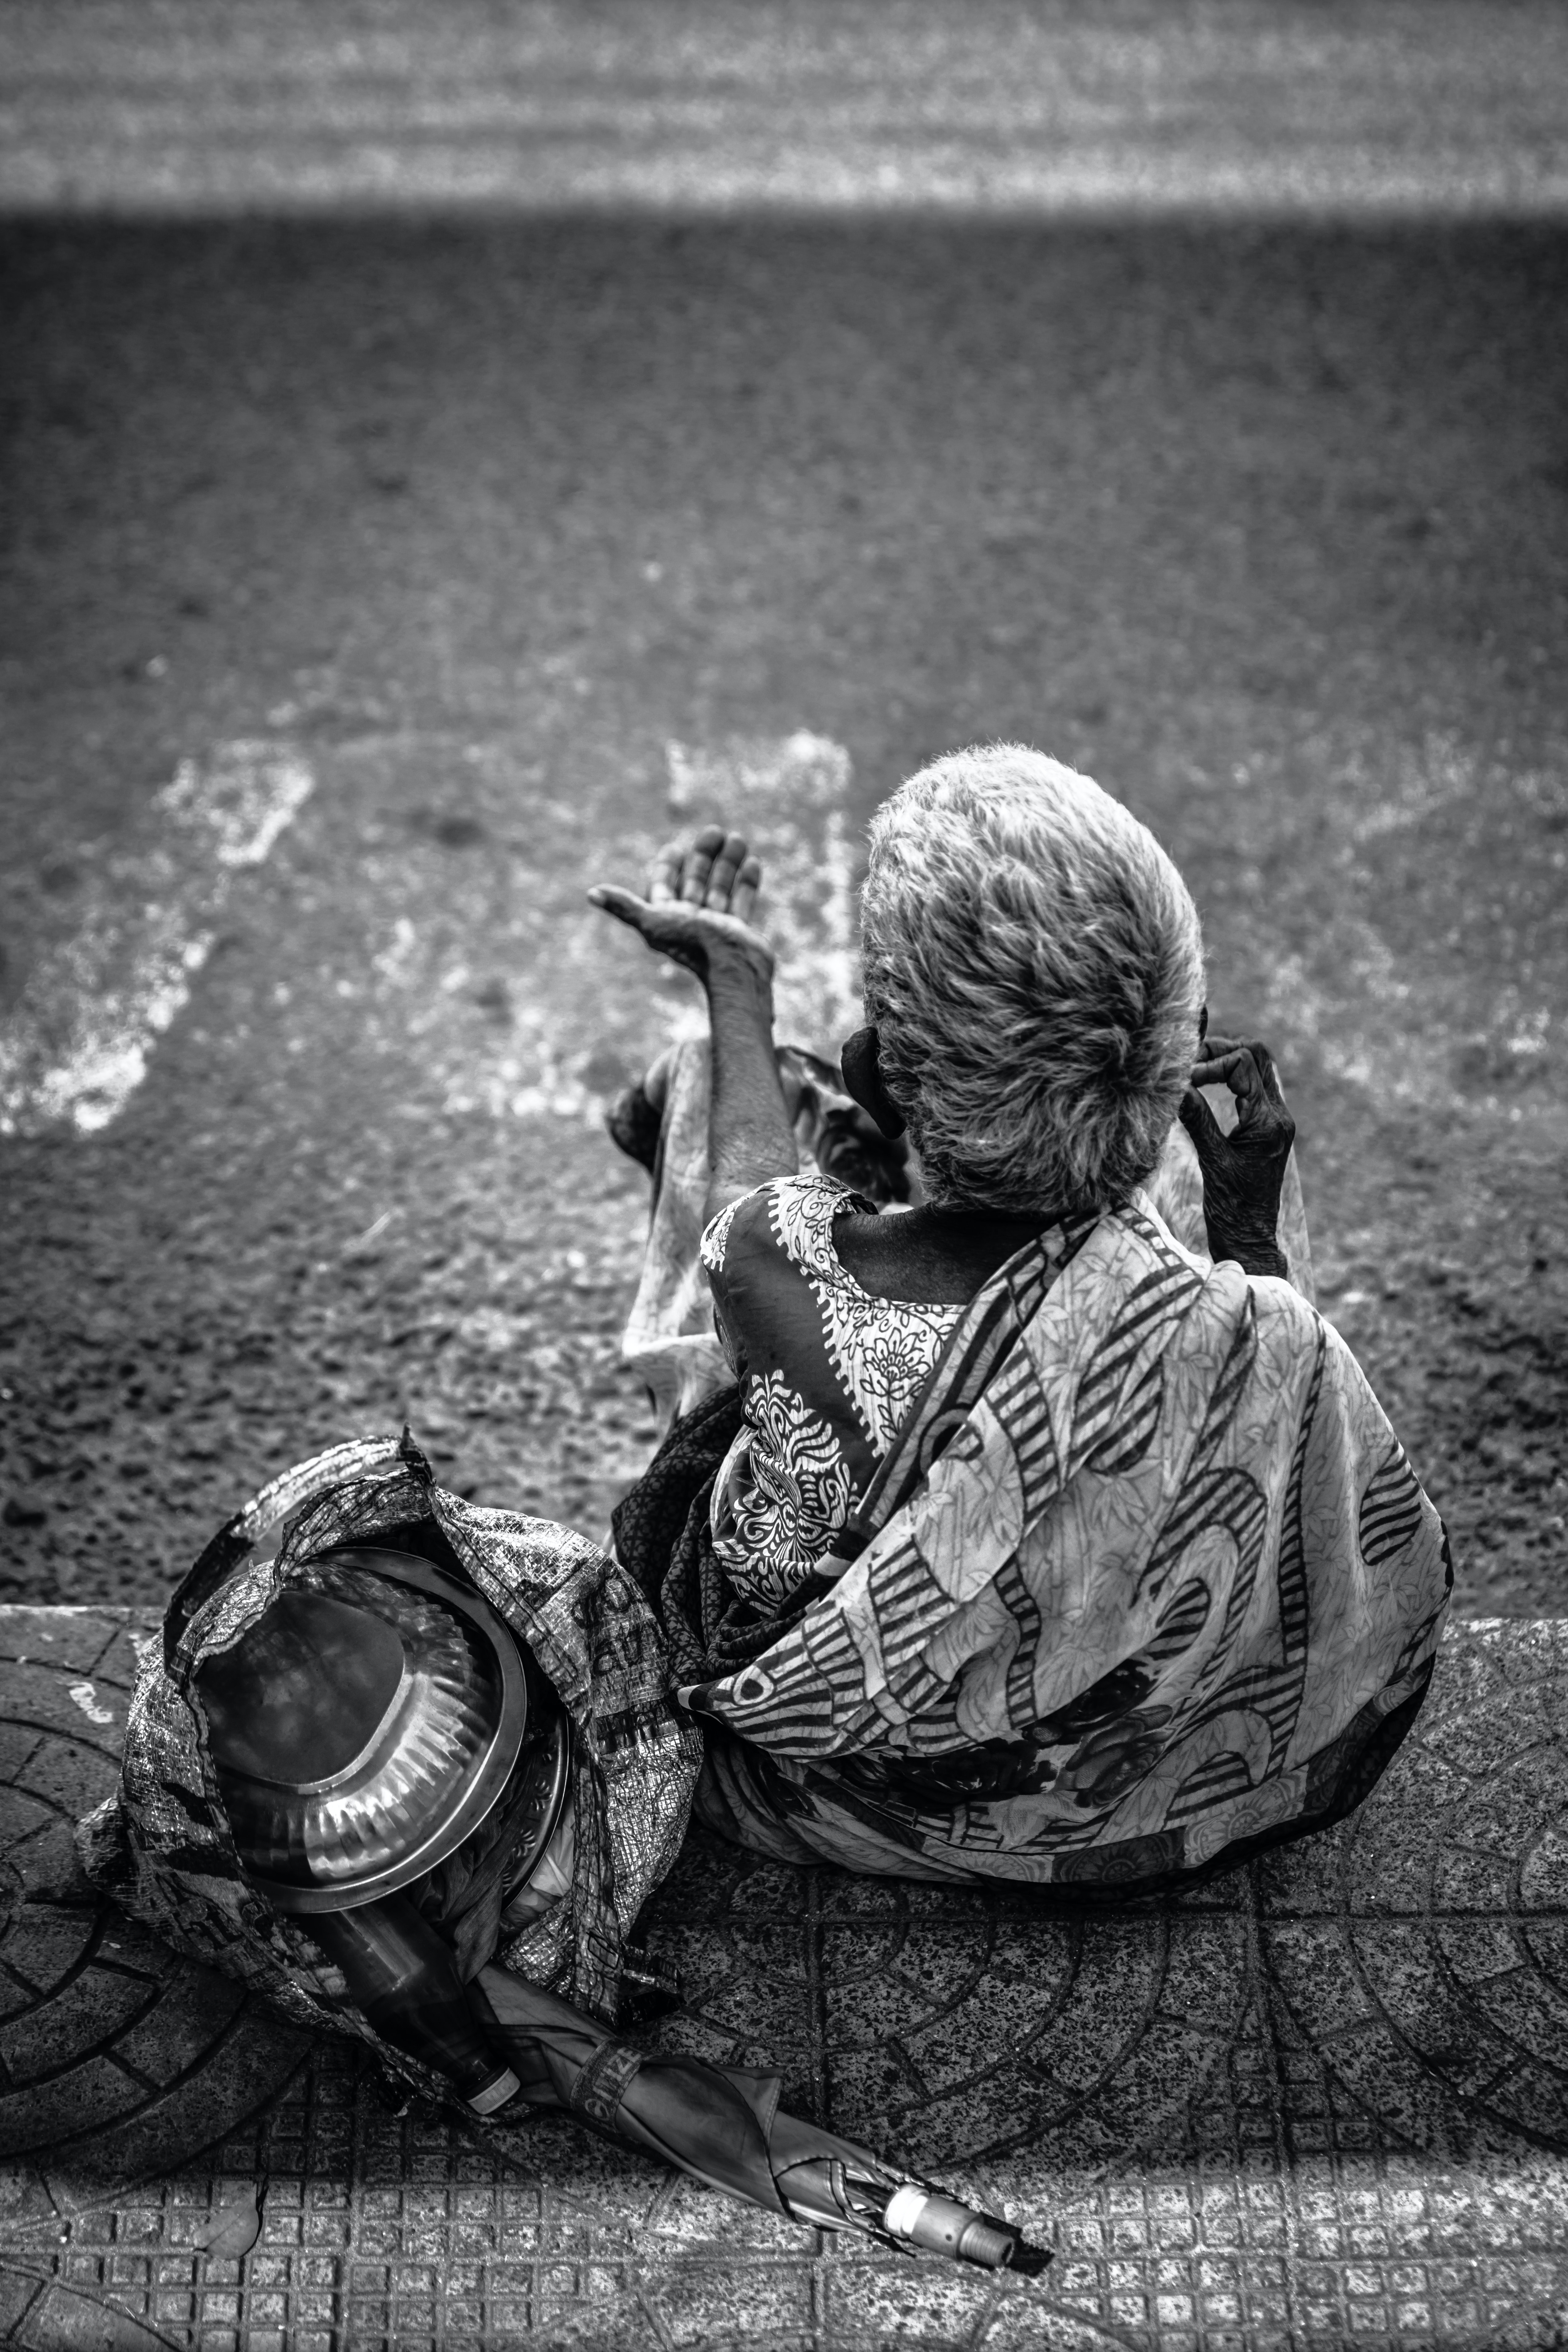 grayscale photography of person sitting near road